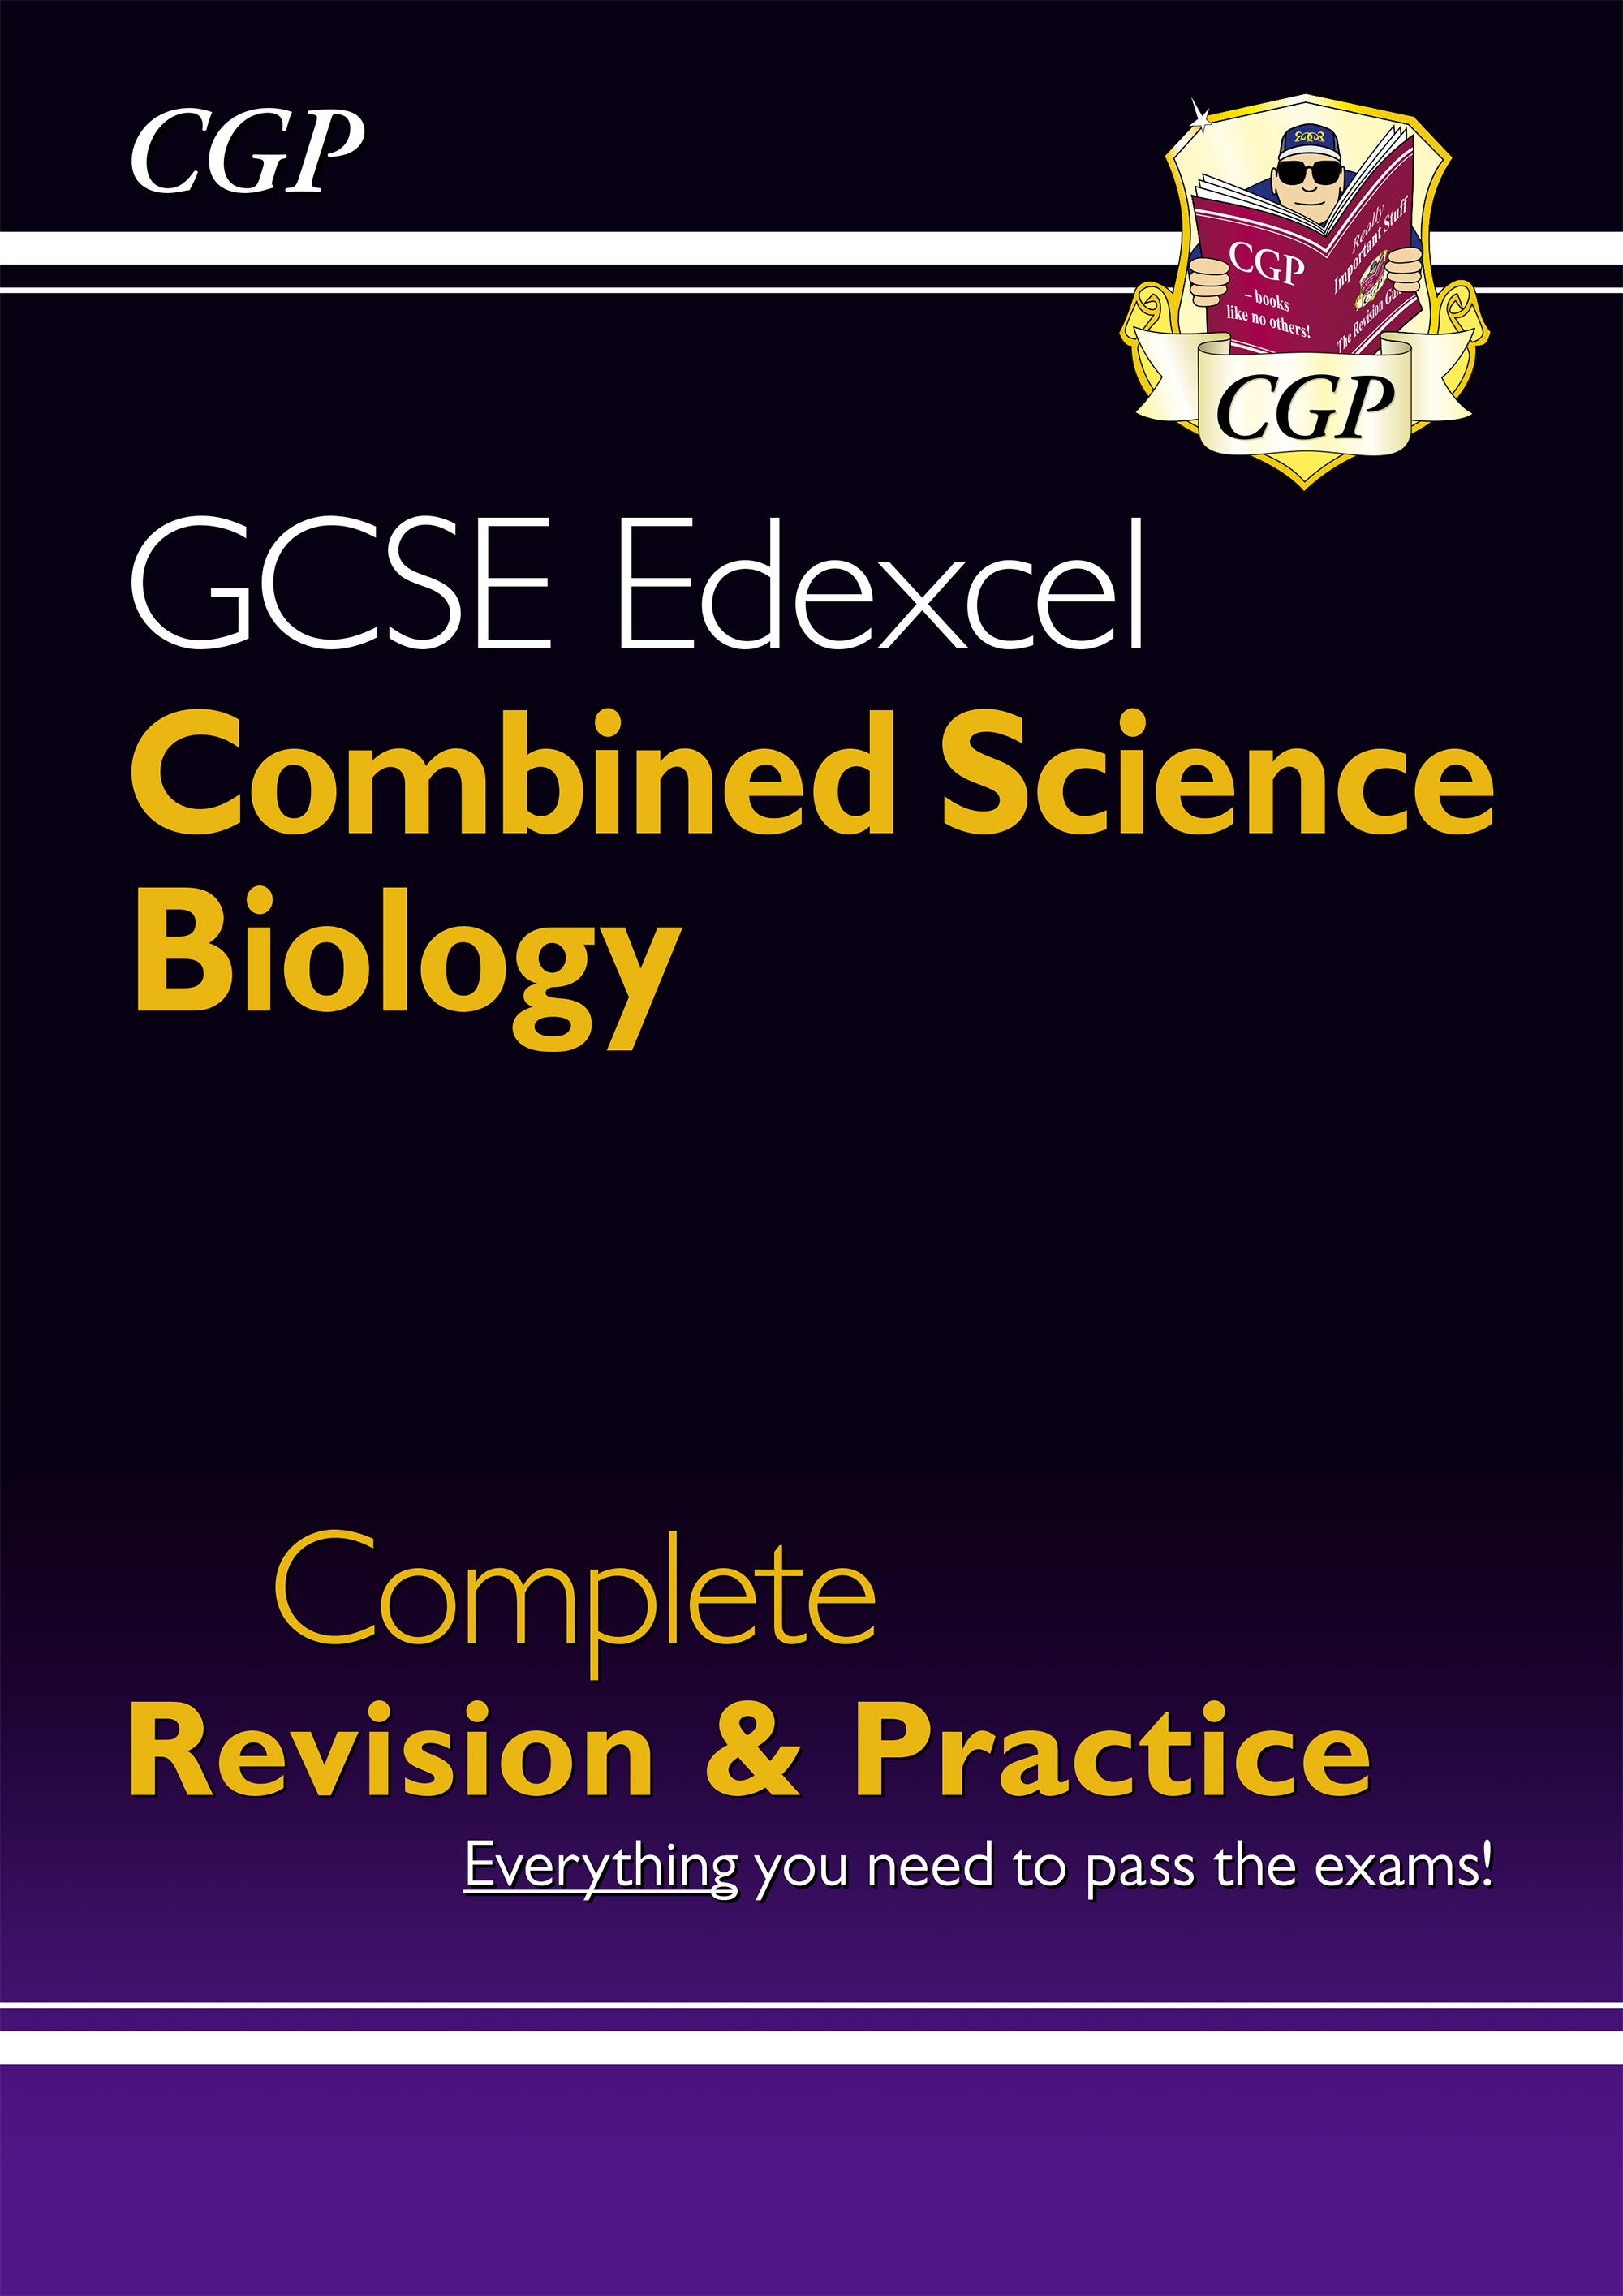 SCBES41DK - New Grade 9-1 GCSE Combined Science: Biology Edexcel Complete Revision & Practice